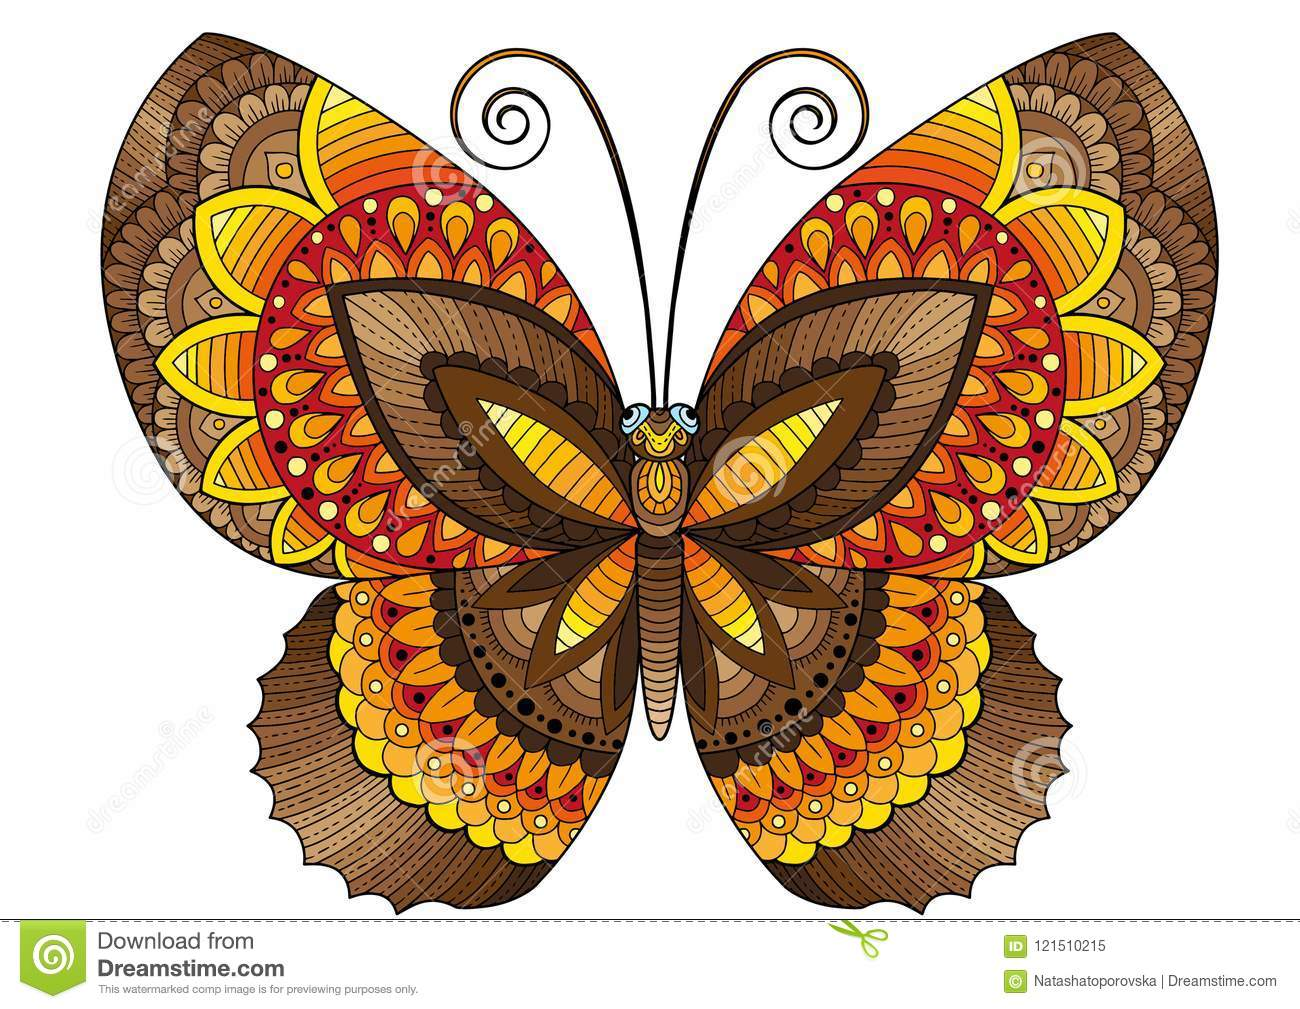 Decorative Butterfly Of Bright Colors Image For Print On Clothes Coloring Backgrounds